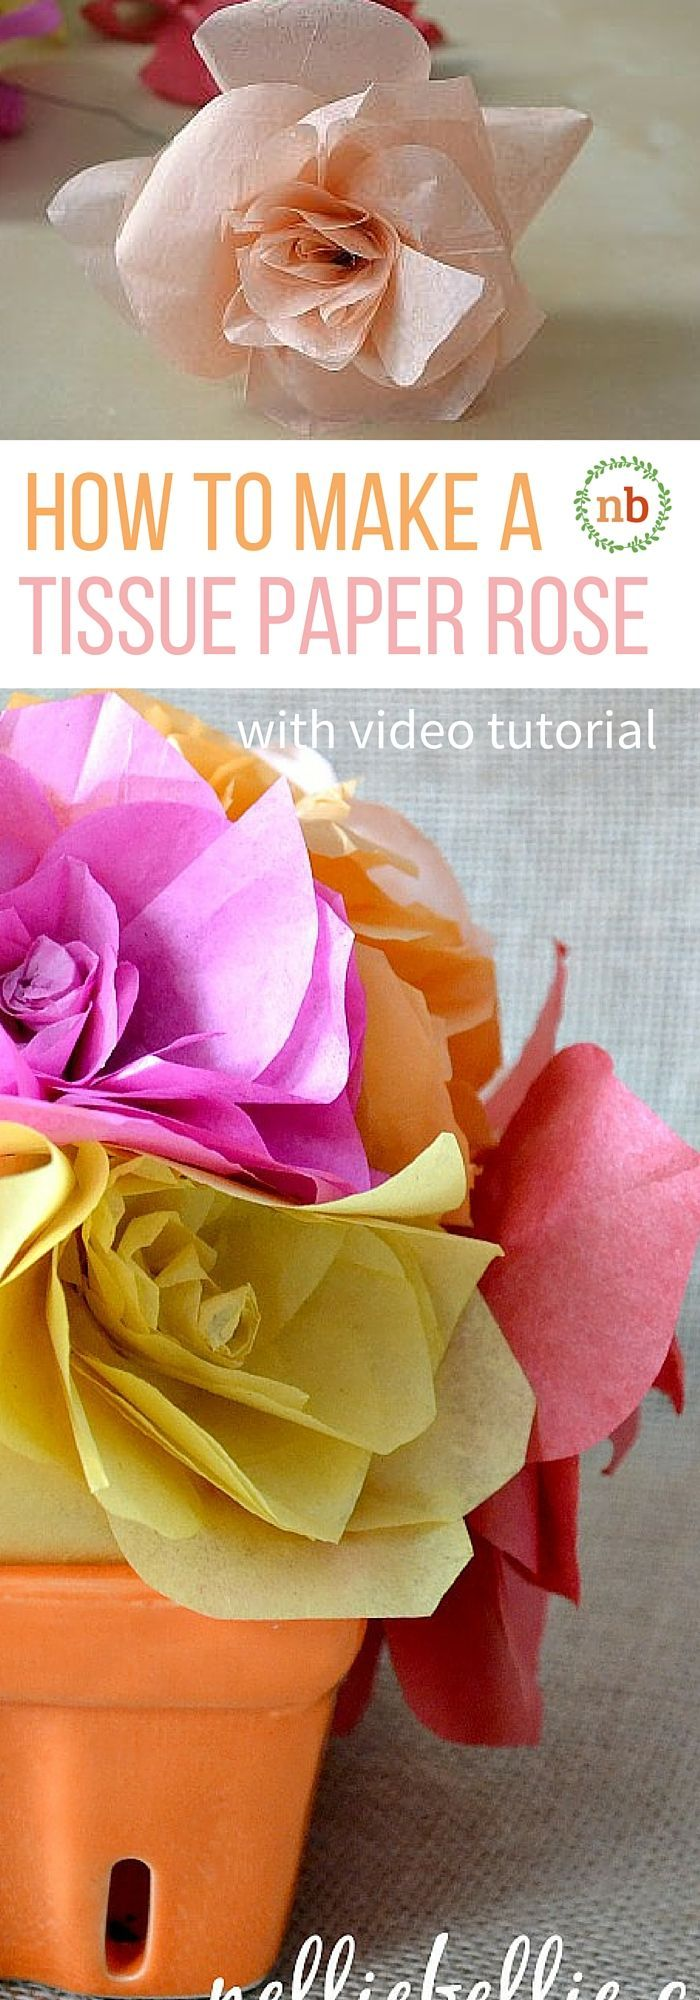 Easy Diy Tissue Paper Flowers A Simple Diy From Tissue Paper